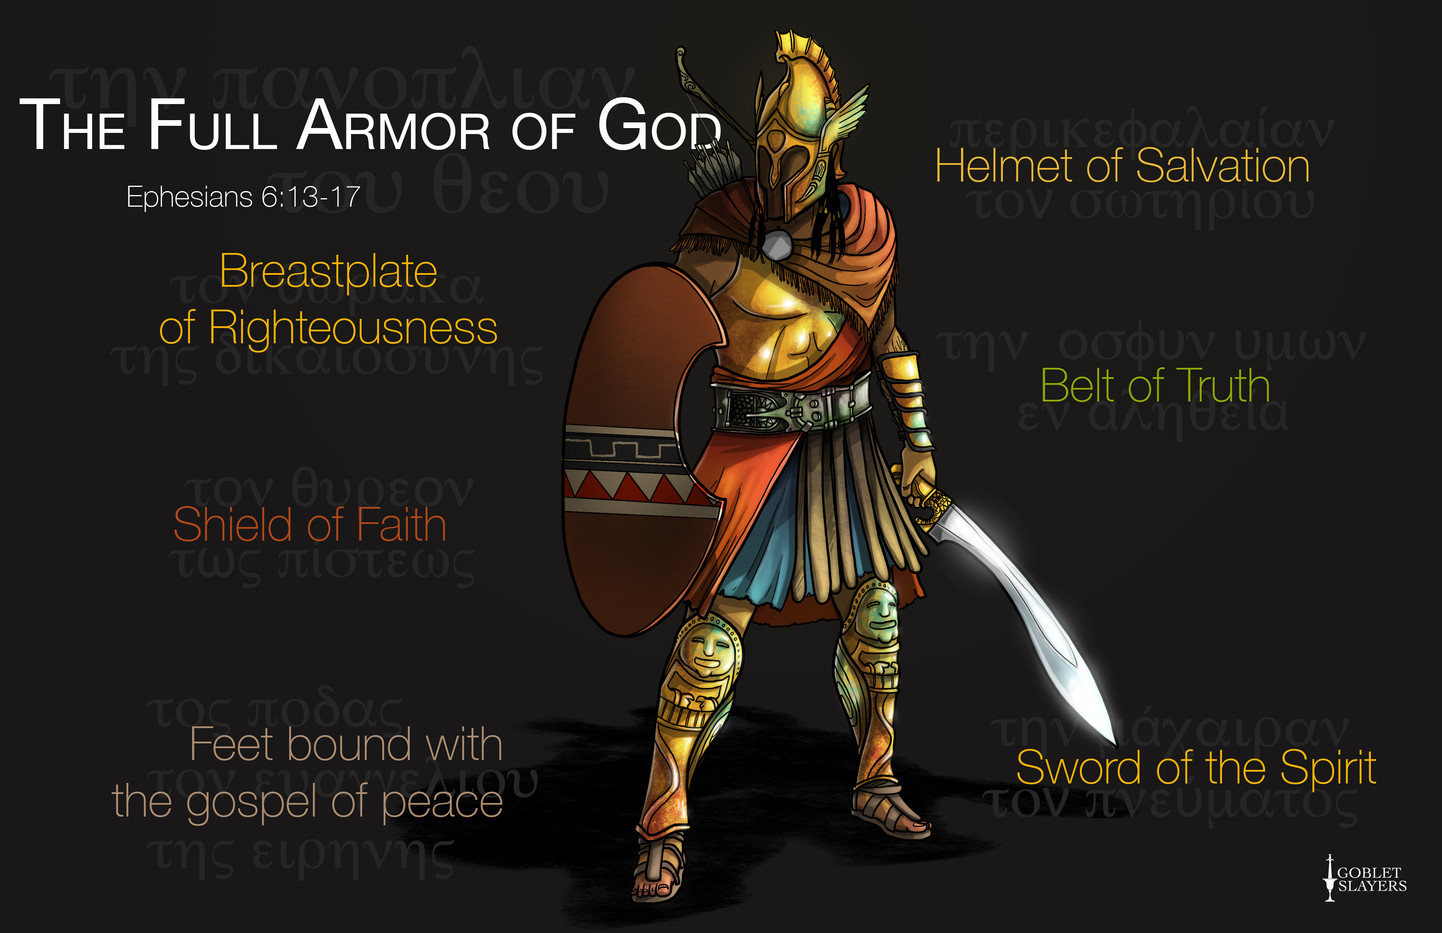 Armor of God Ephesus Labeled.jpg